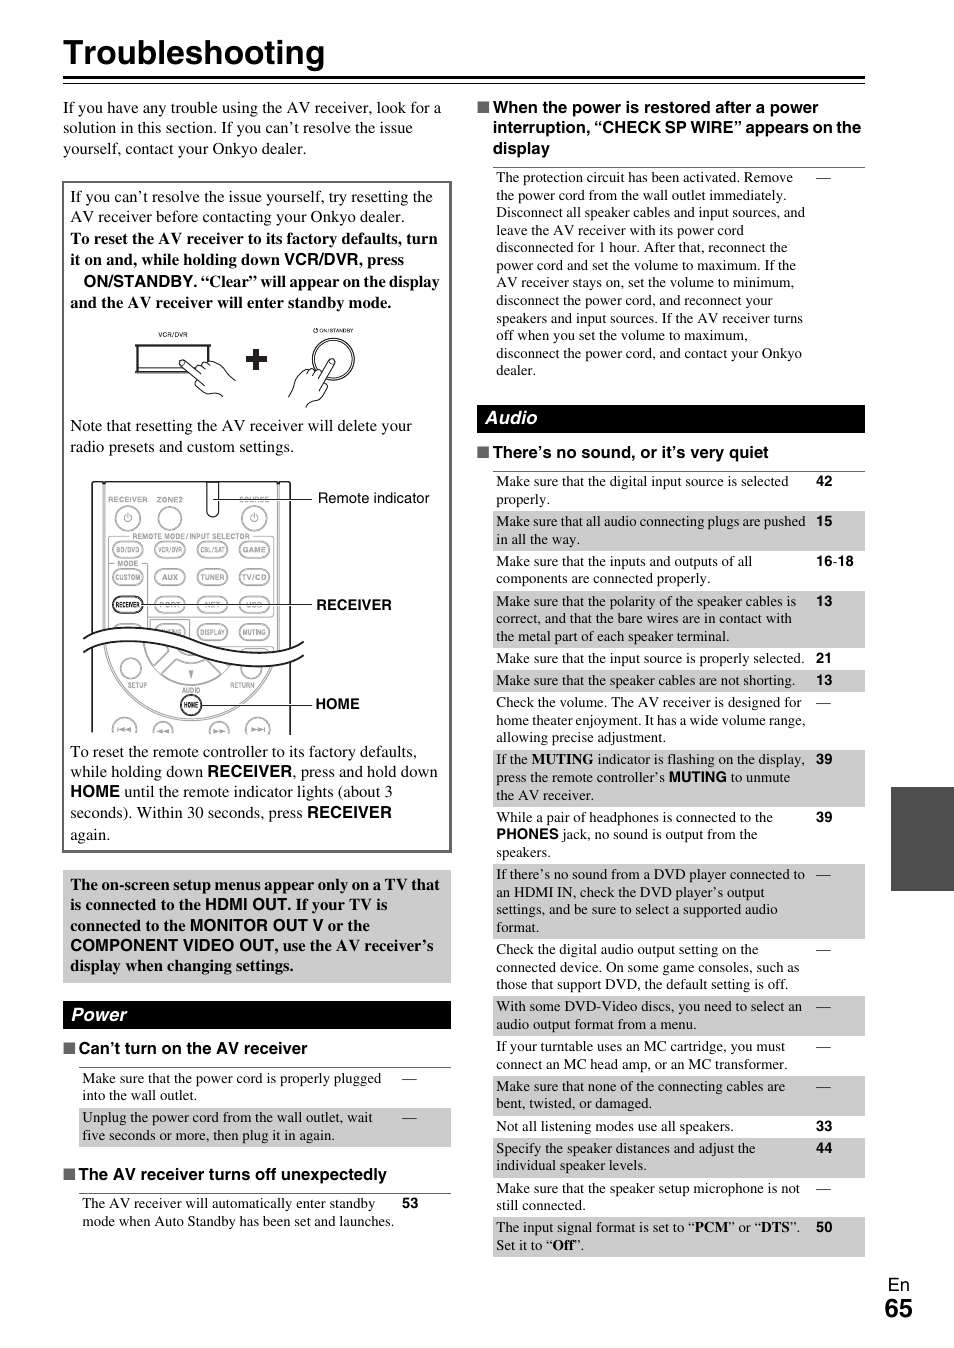 Onkyo ht rc360 manual onkyo ht rc360 array appendix troubleshooting onkyo 7 2 channel network audio video rh manualsdir com fandeluxe Image collections